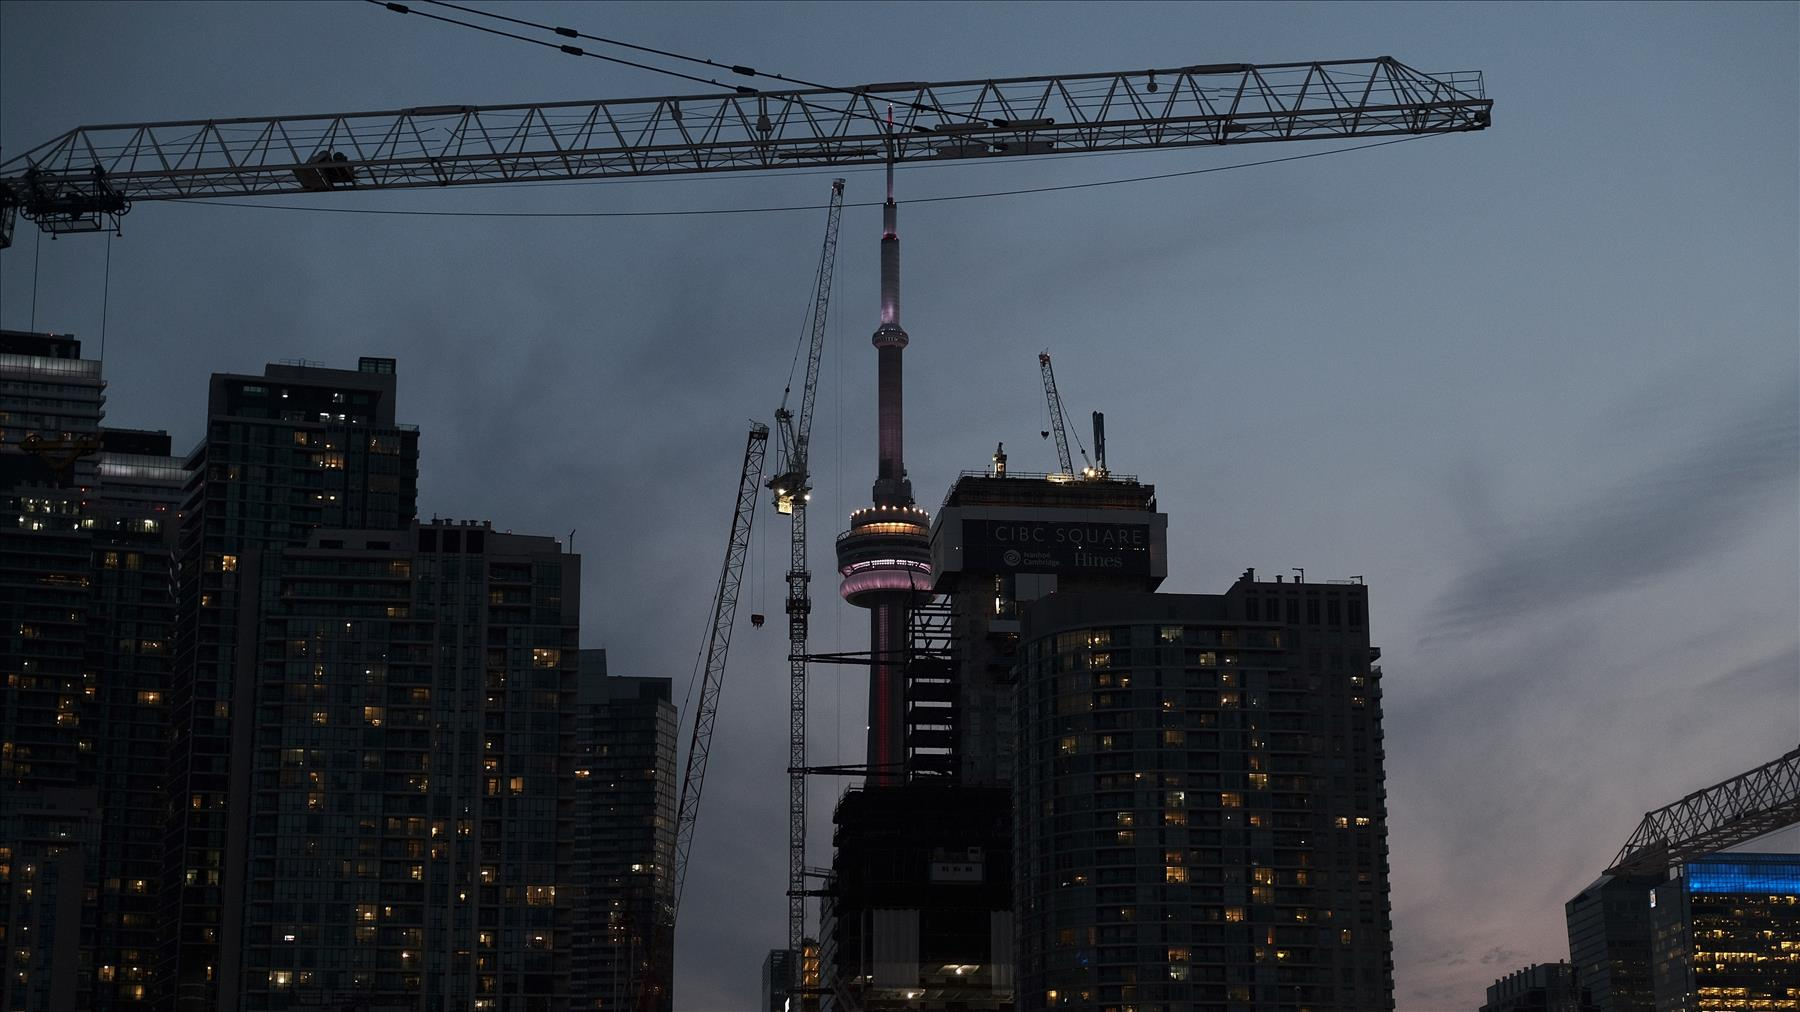 What Can We Learn From the Failed Smart City Development Project in Canada